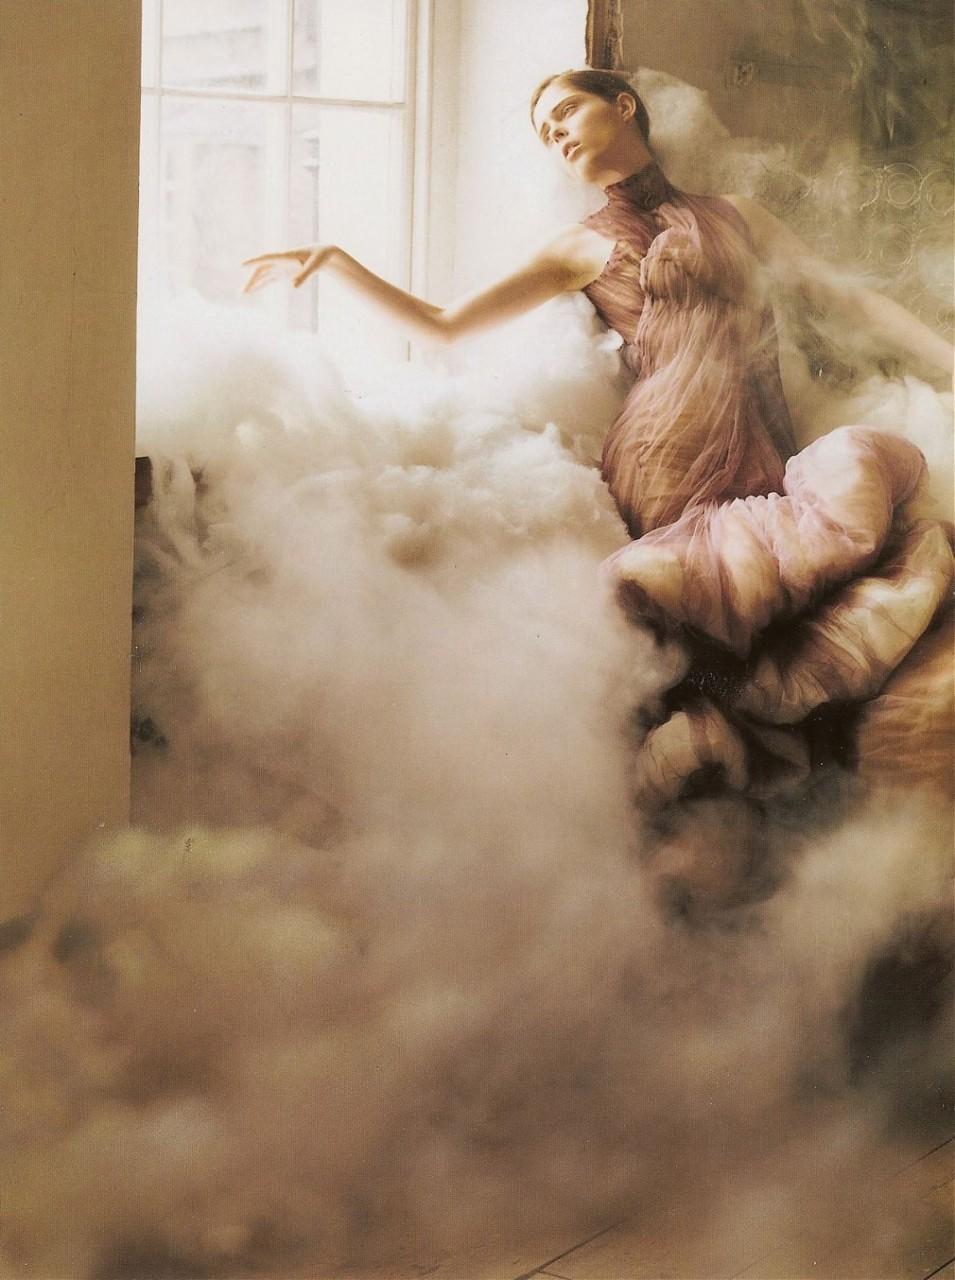 Coco Rocha: Curiouser & Curiouser - Vogue UK by Tim Walker, February 2007